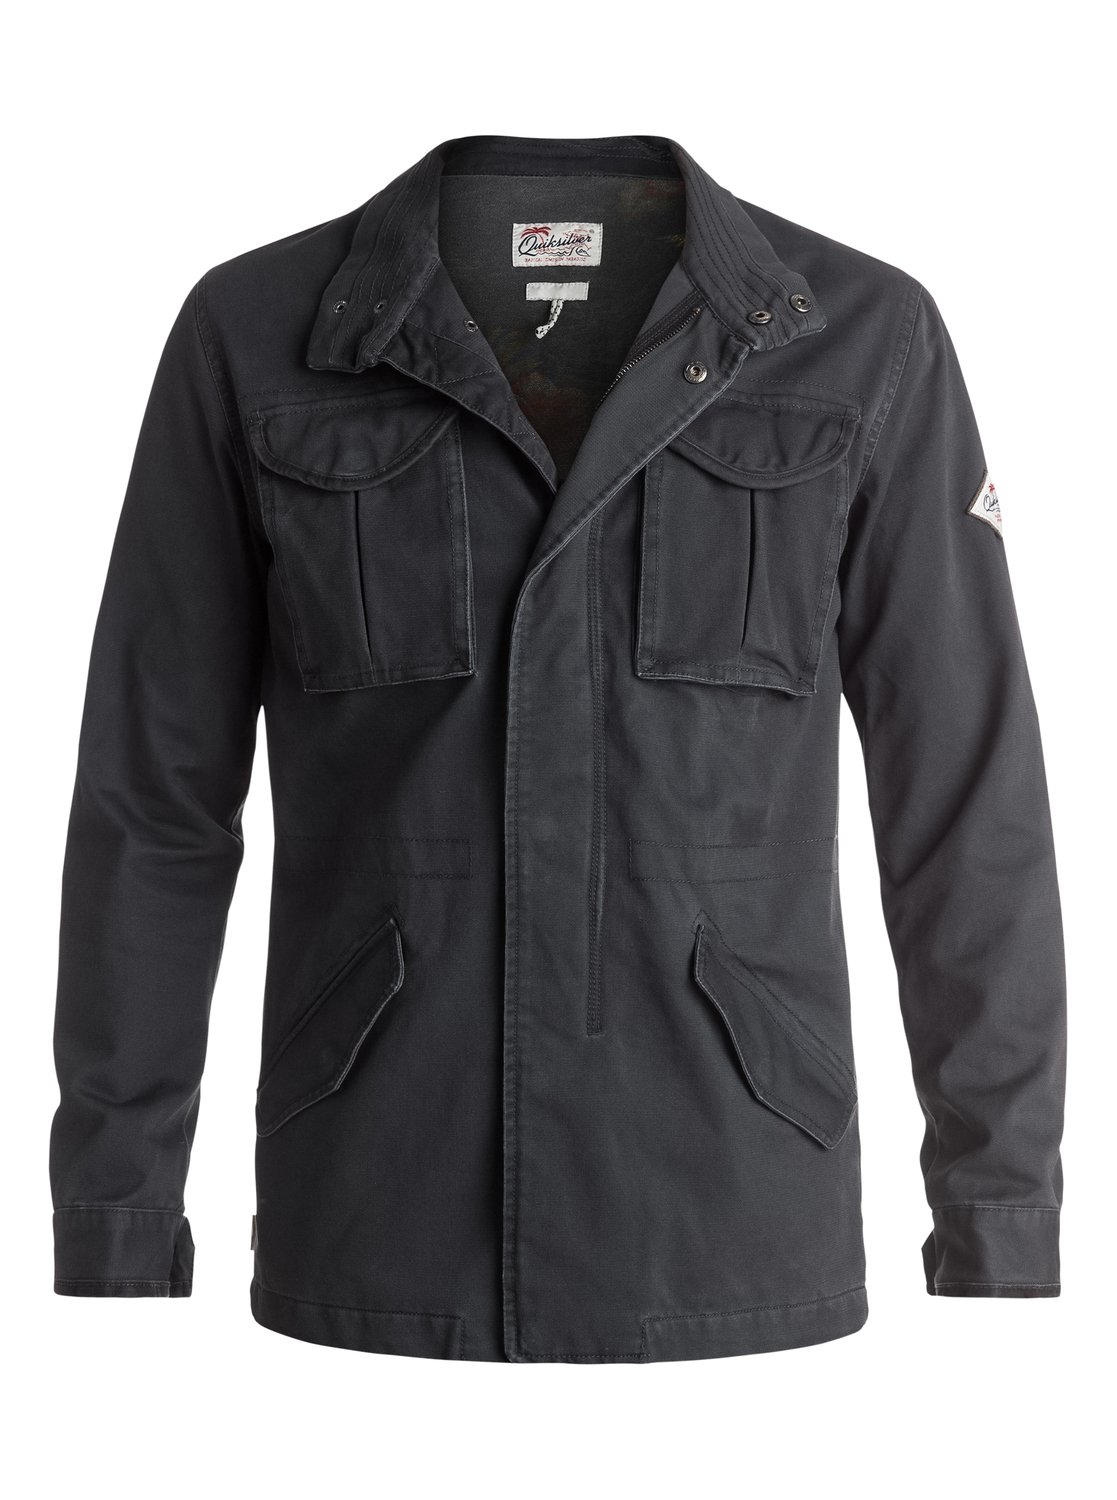 quiksilver new capital veste militaire pour homme eqyjk03242 ebay. Black Bedroom Furniture Sets. Home Design Ideas